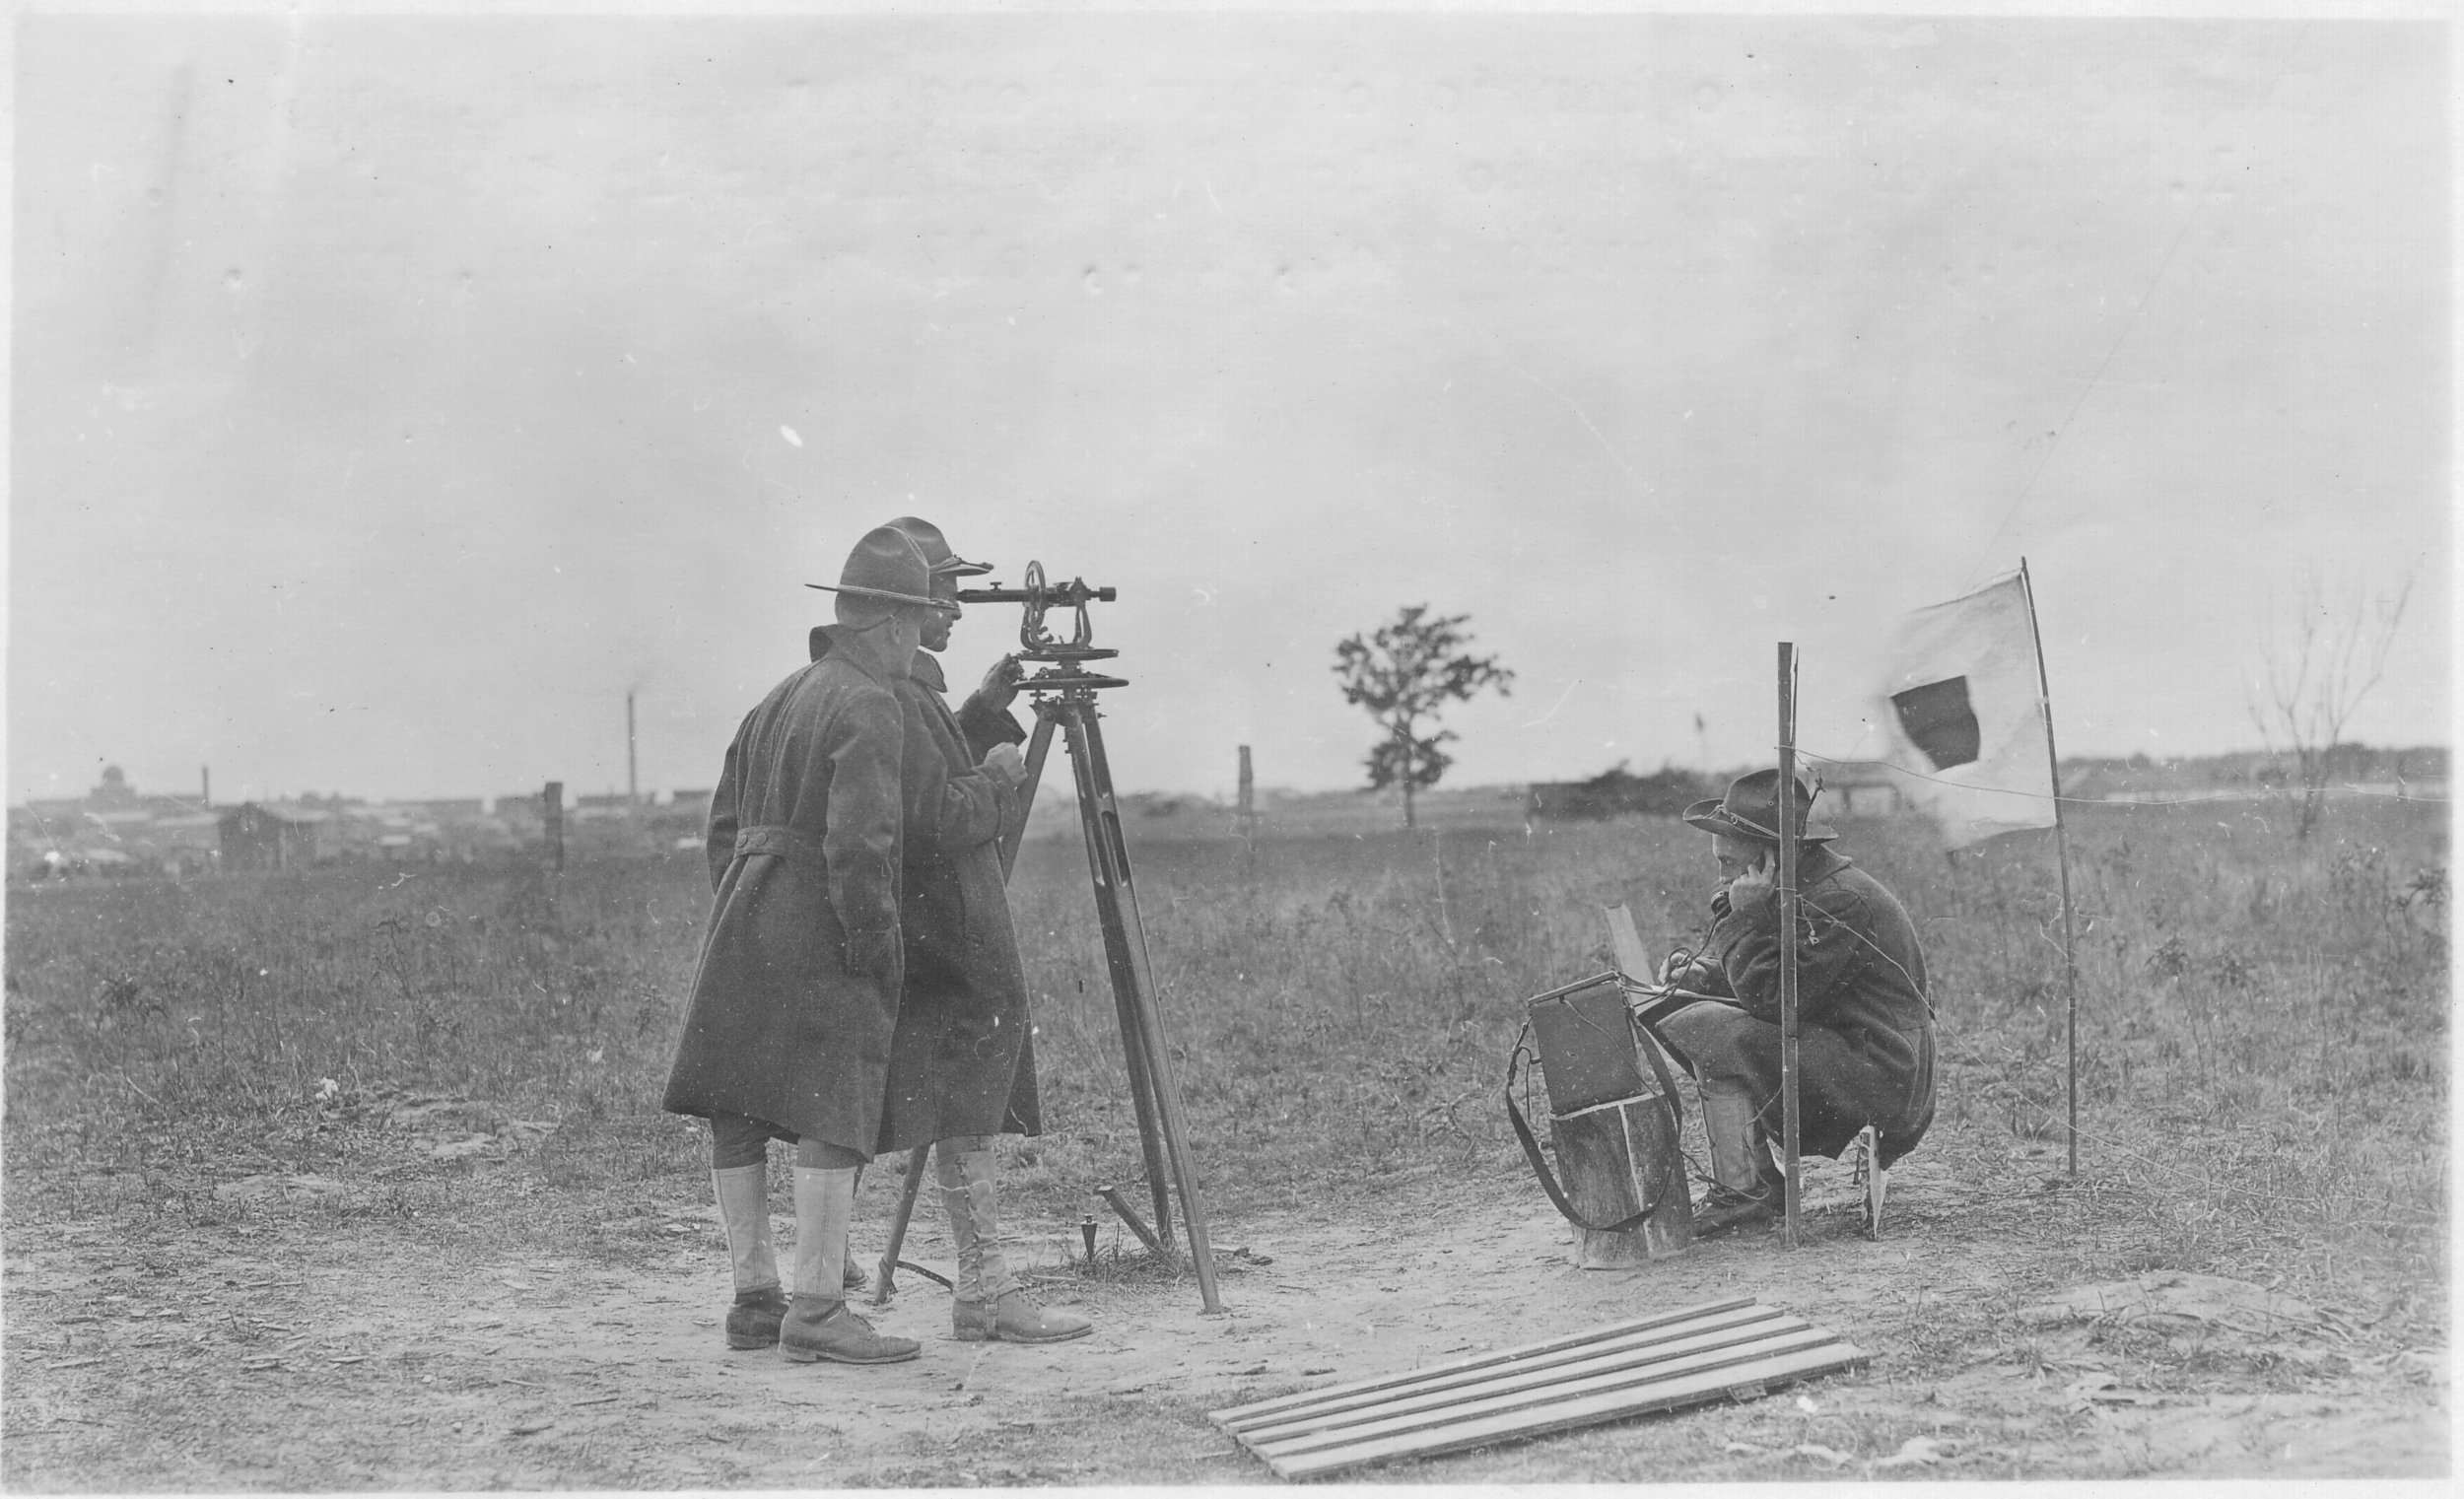 Privates Bauer and Keyte prepare to use a theodolite to track a weather balloon.Photo by A.W. Atkinson,US Army Signal Corps.Courtesy of the US Army Heritage and Education Center, Carlisle, PA.